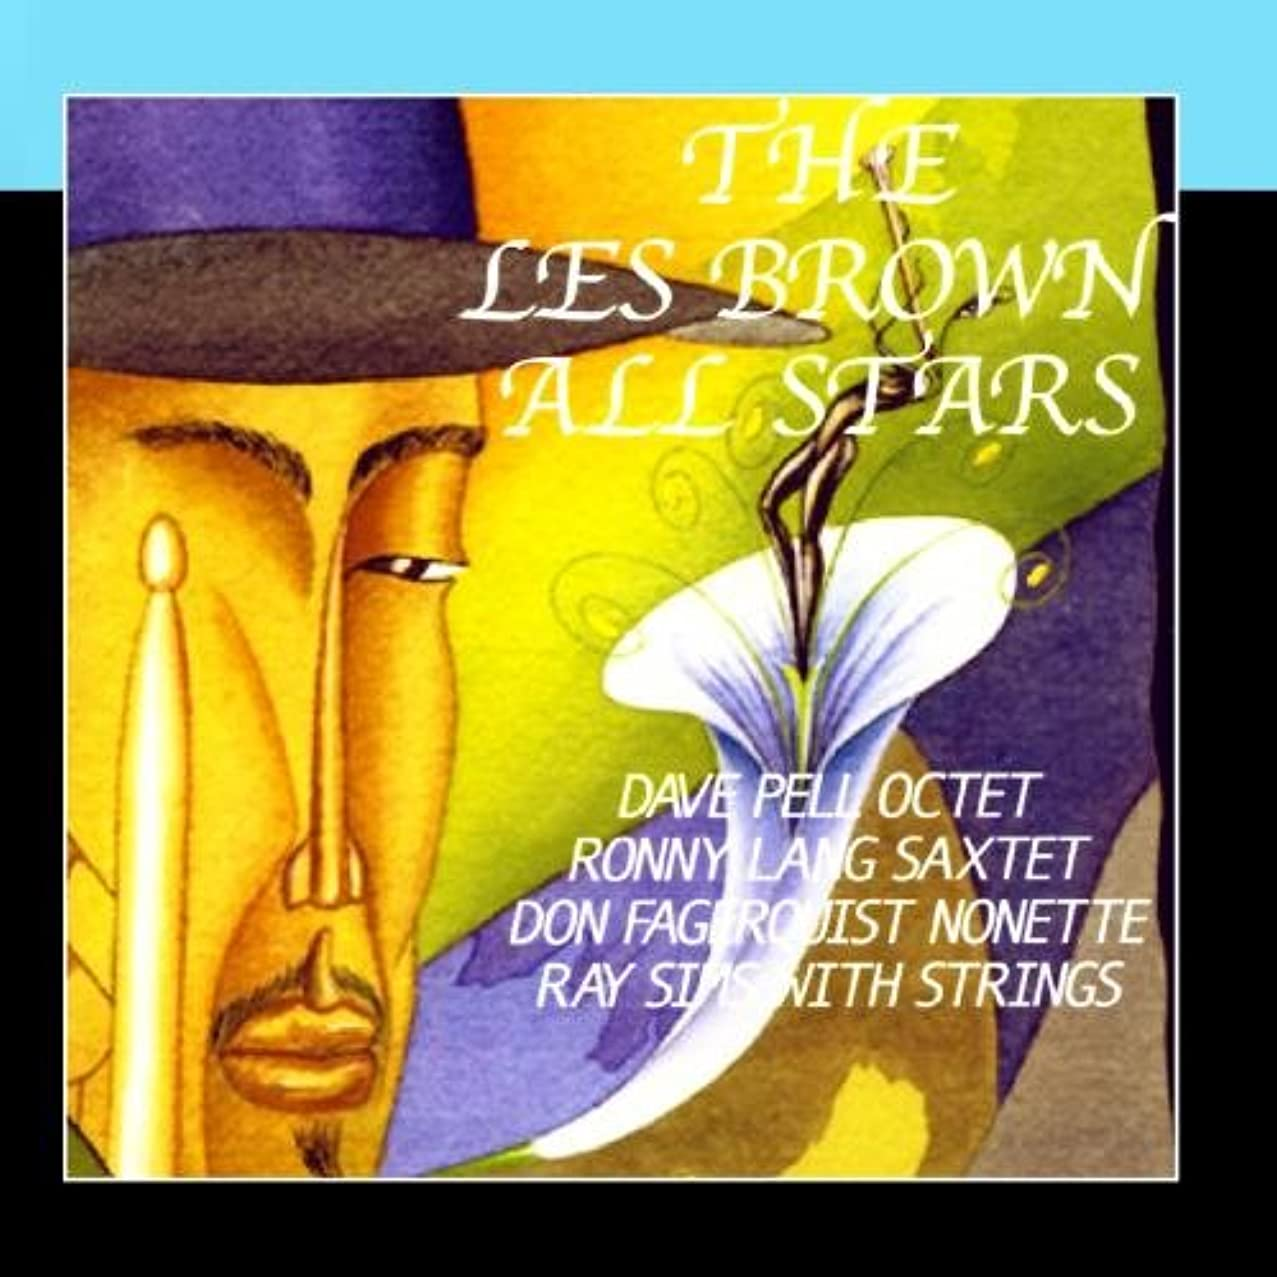 The Les Brown All Stars